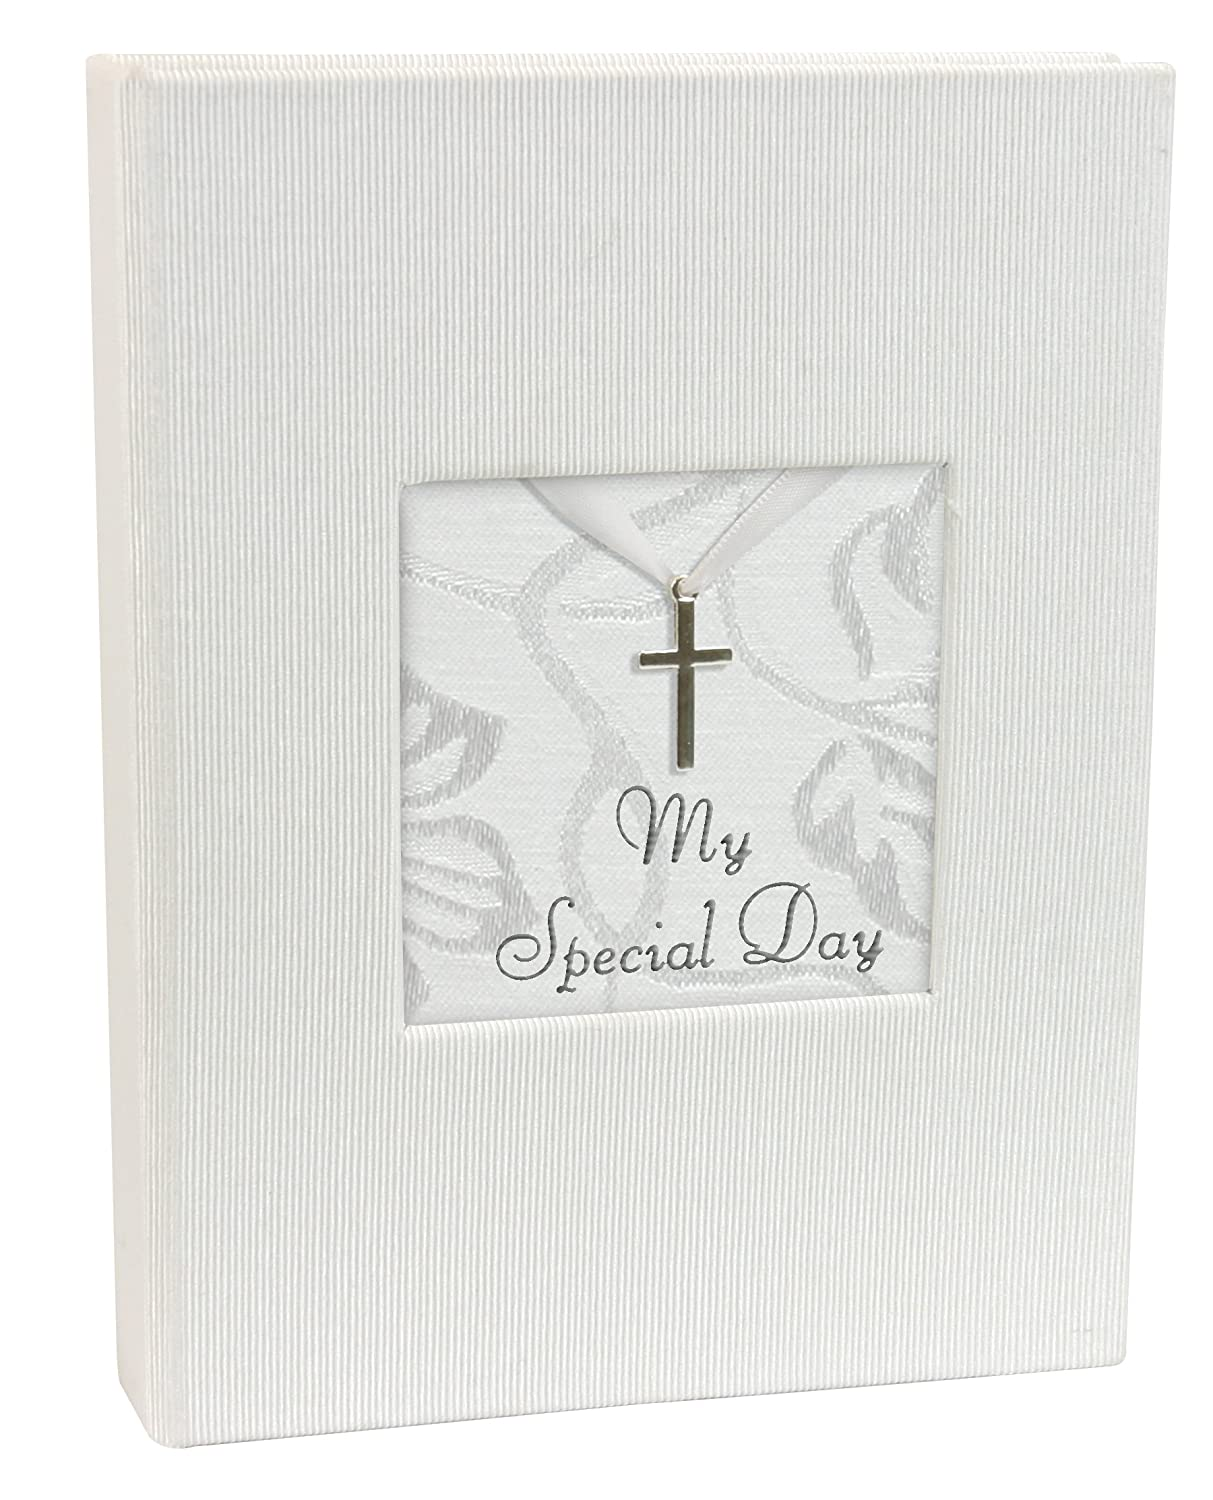 Stephan Baby Inspirational Keepsake Mini Photo Album with Silver Cross, My Special Day 387604